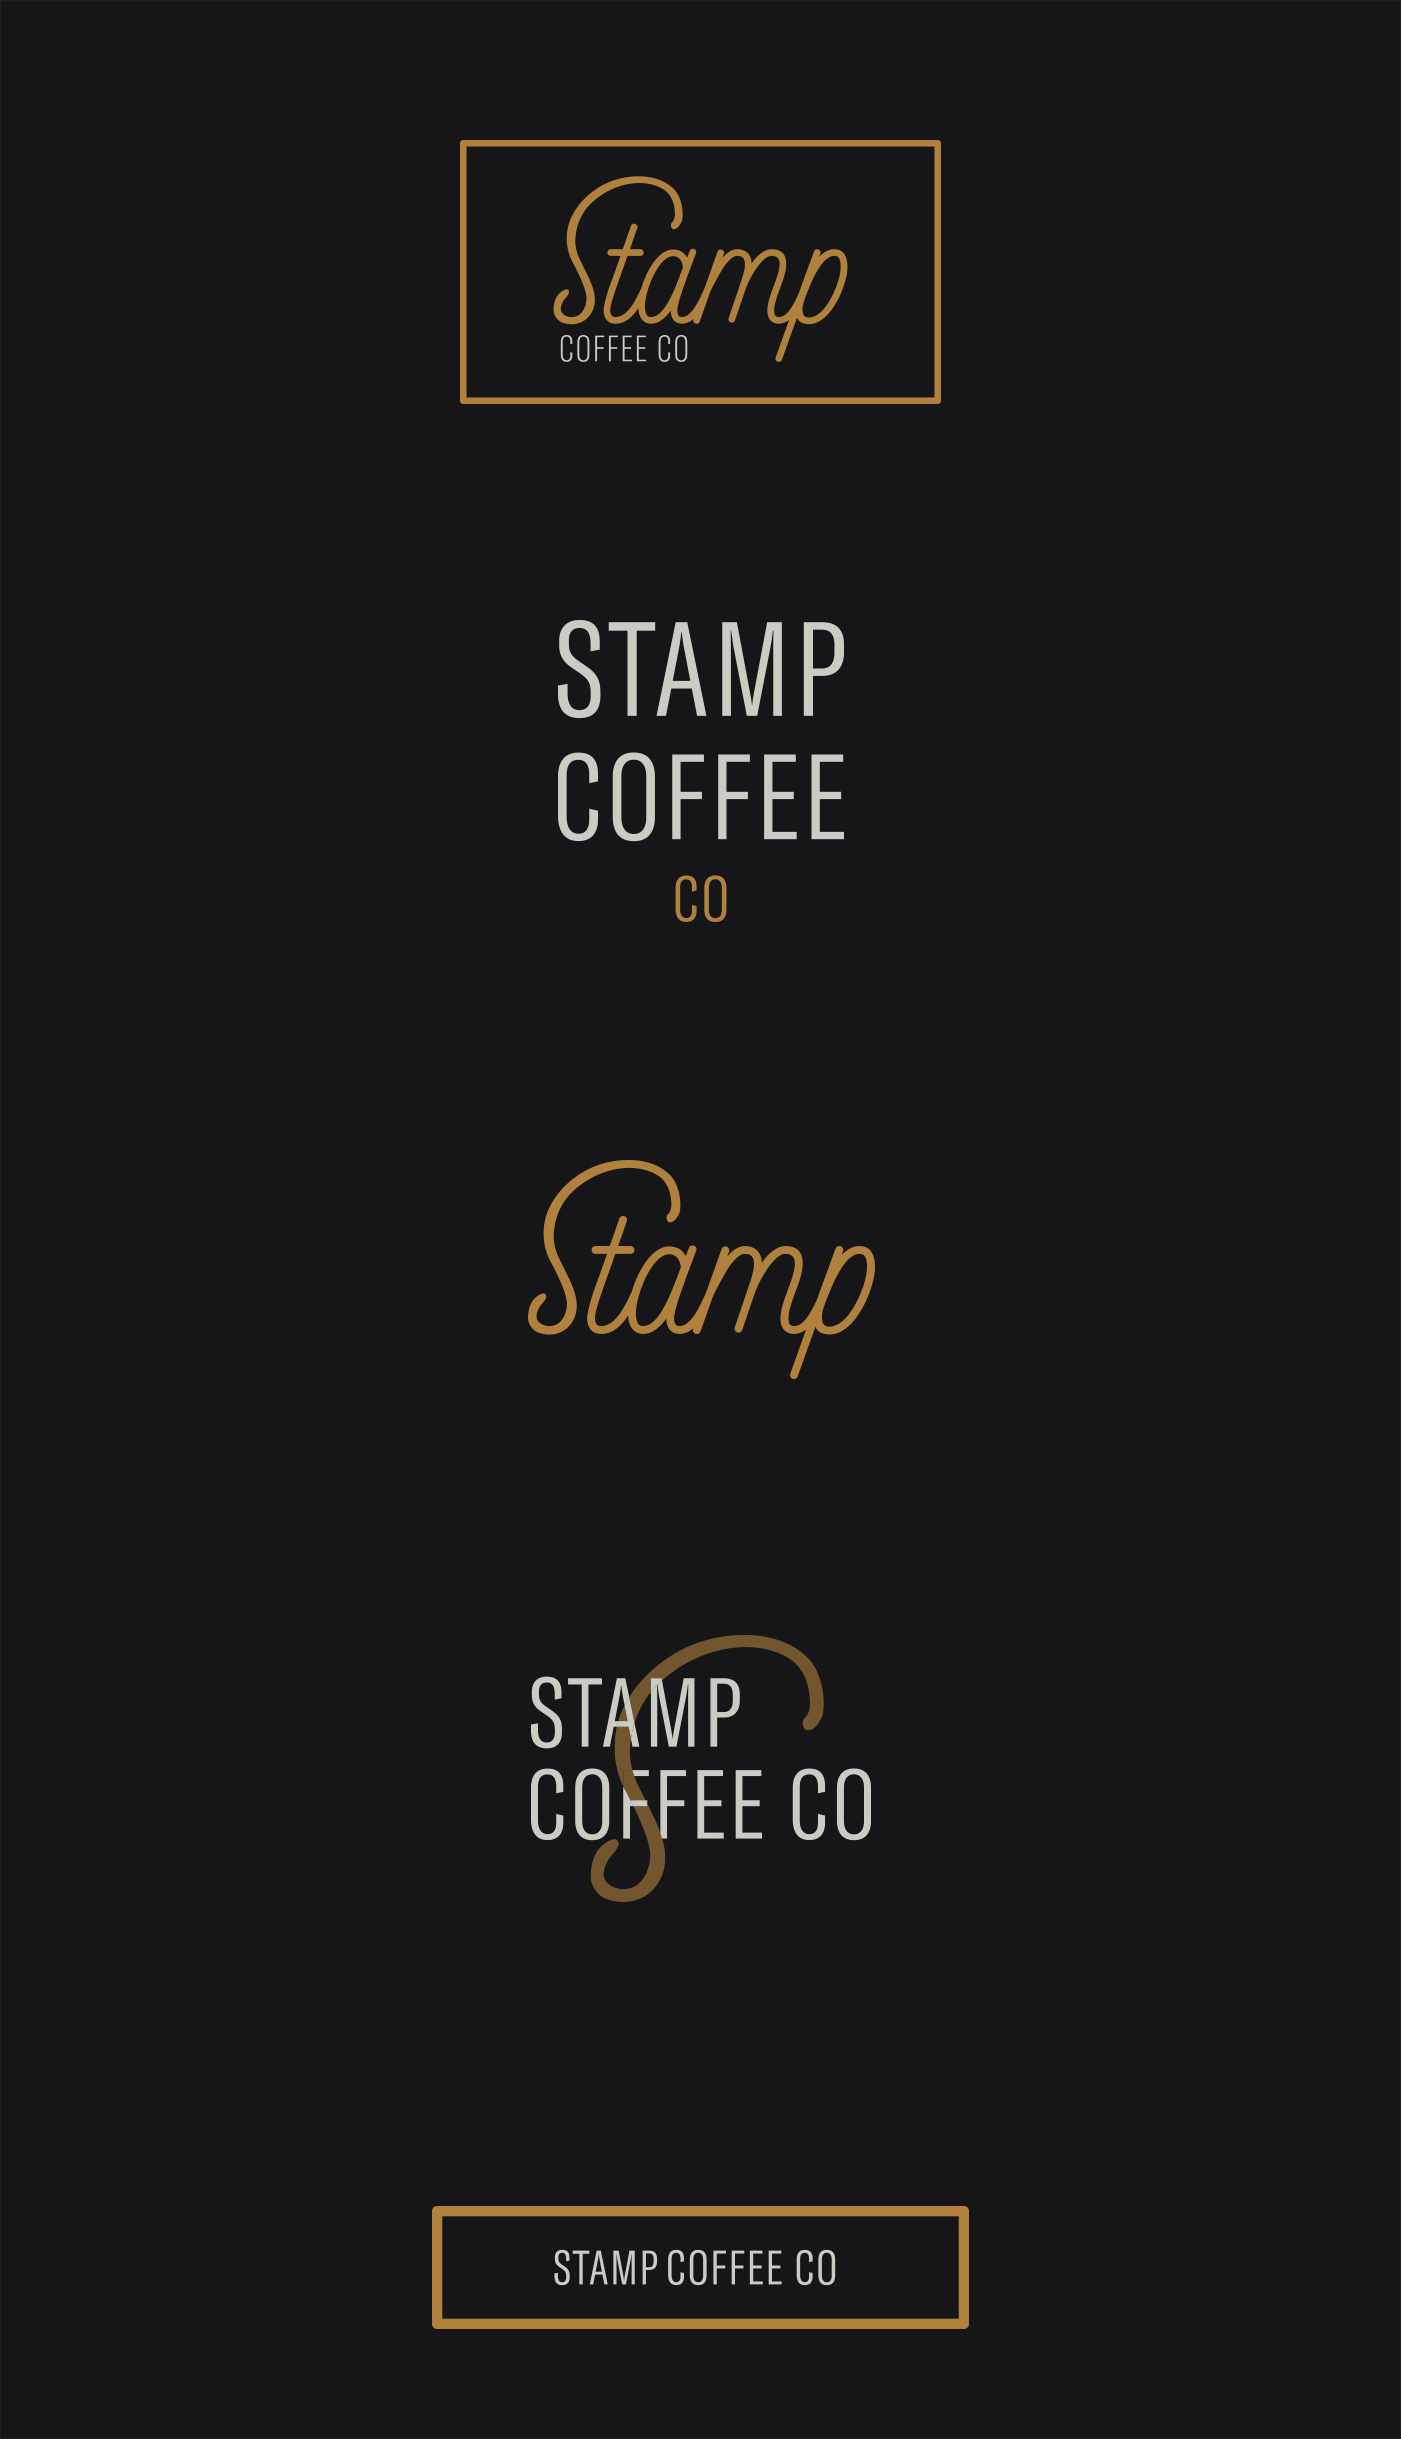 stampcoffee